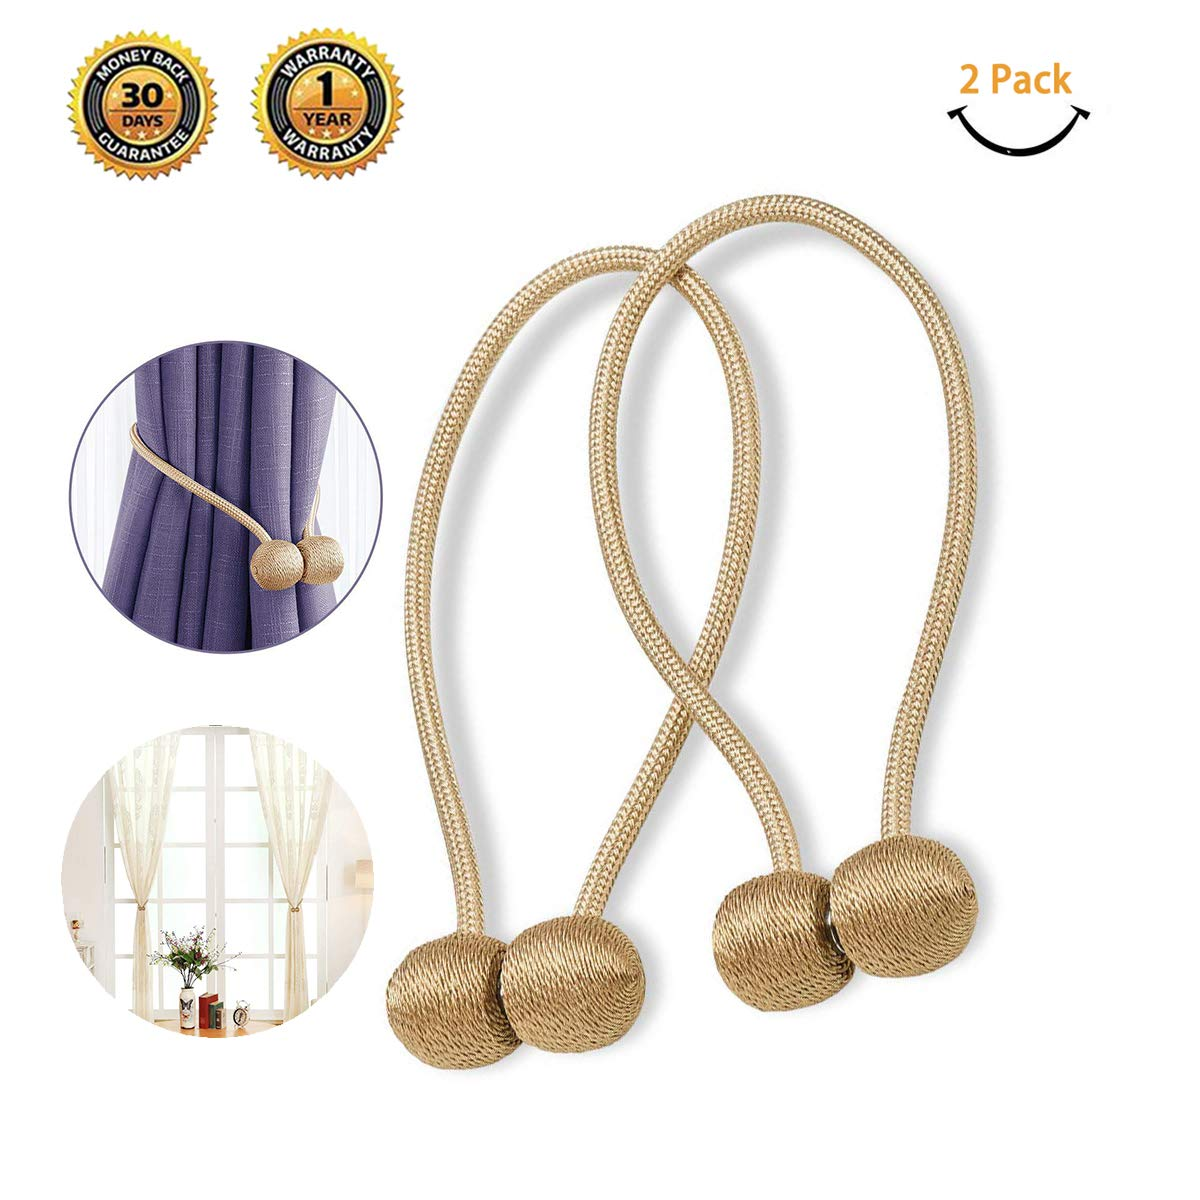 Gootus Curtain Tiebacks Hooks Magnetic Holdbacks - 2 Packs Strong Magnetic Tie Curtain Clips for Home Office Decorative (Blue)